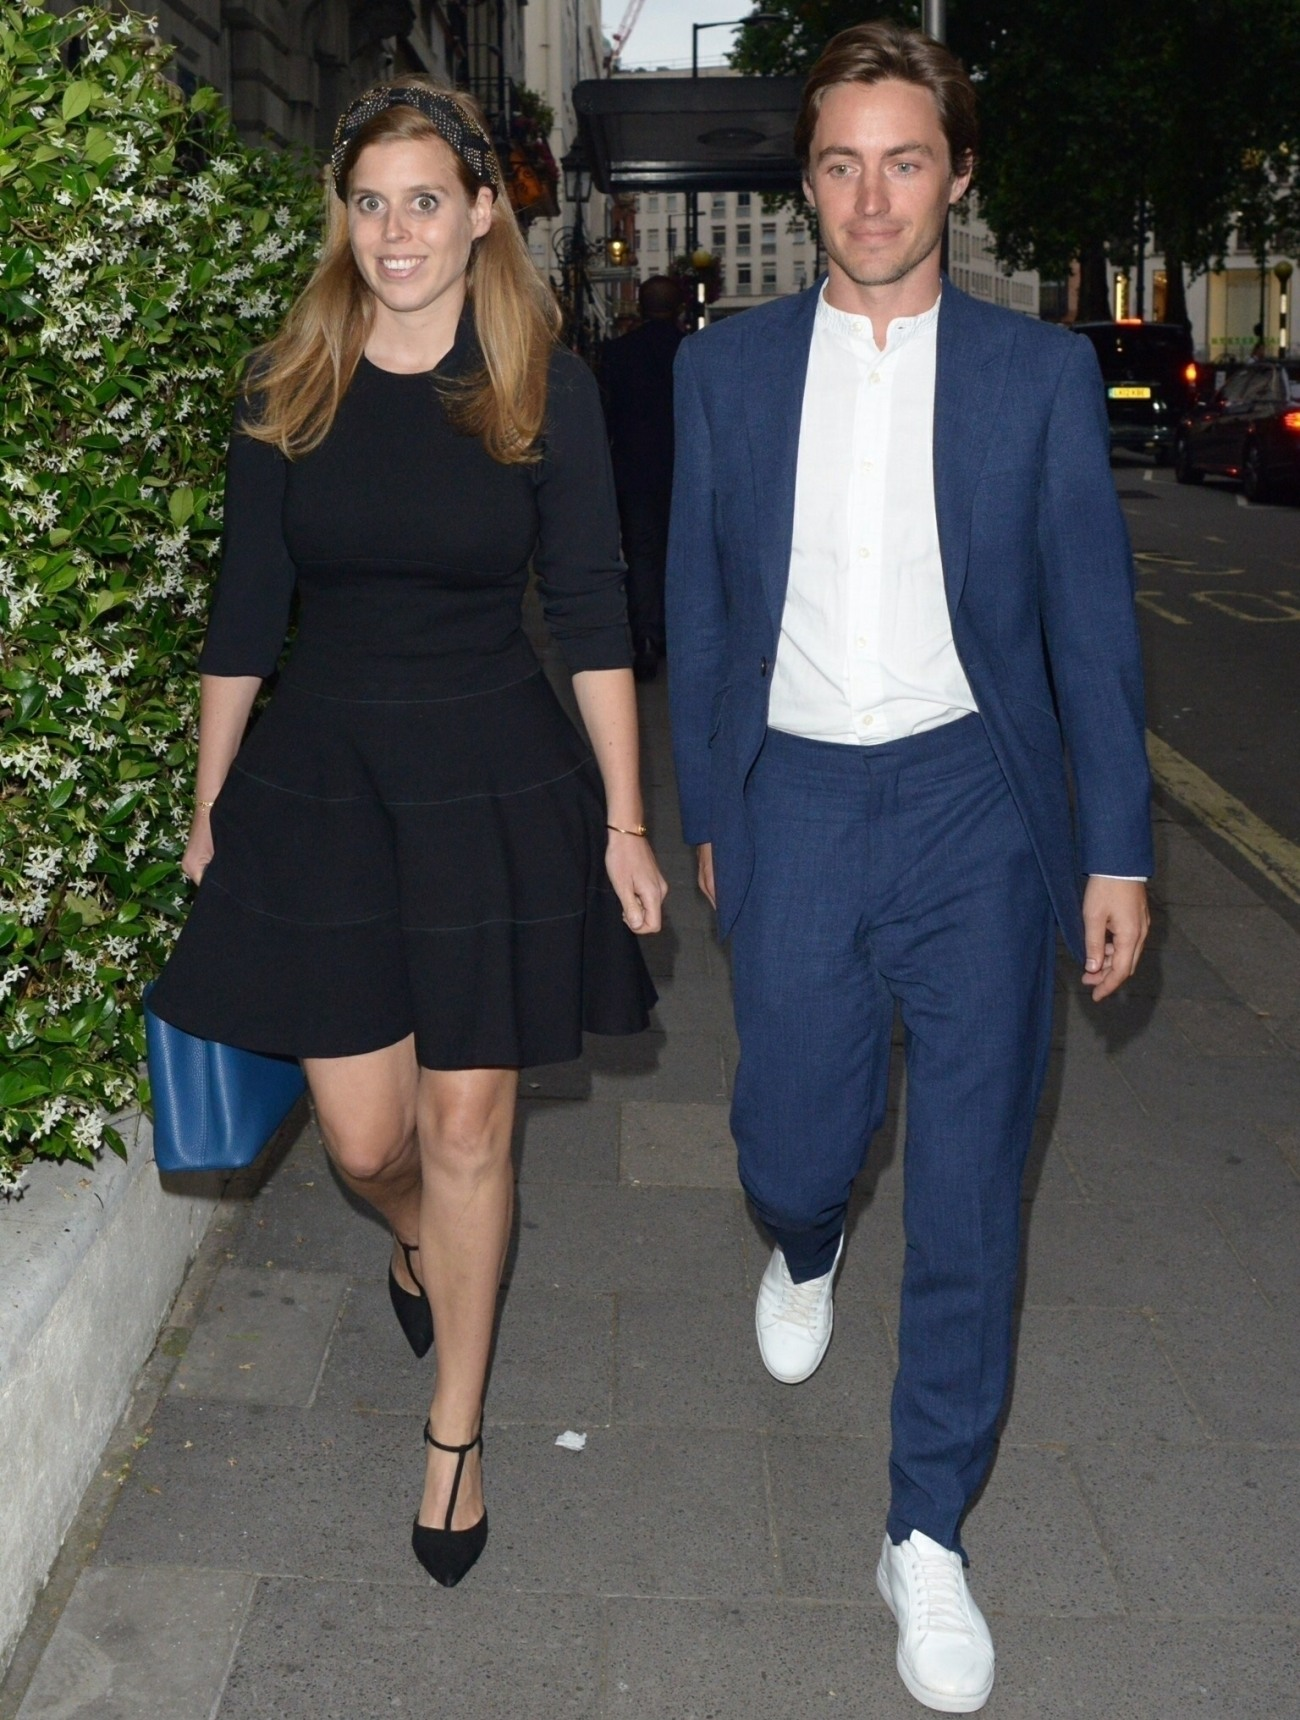 Princess Beatrice of York and Edoardo Mapelli Mozzi at Annabel's Private Members Club in London